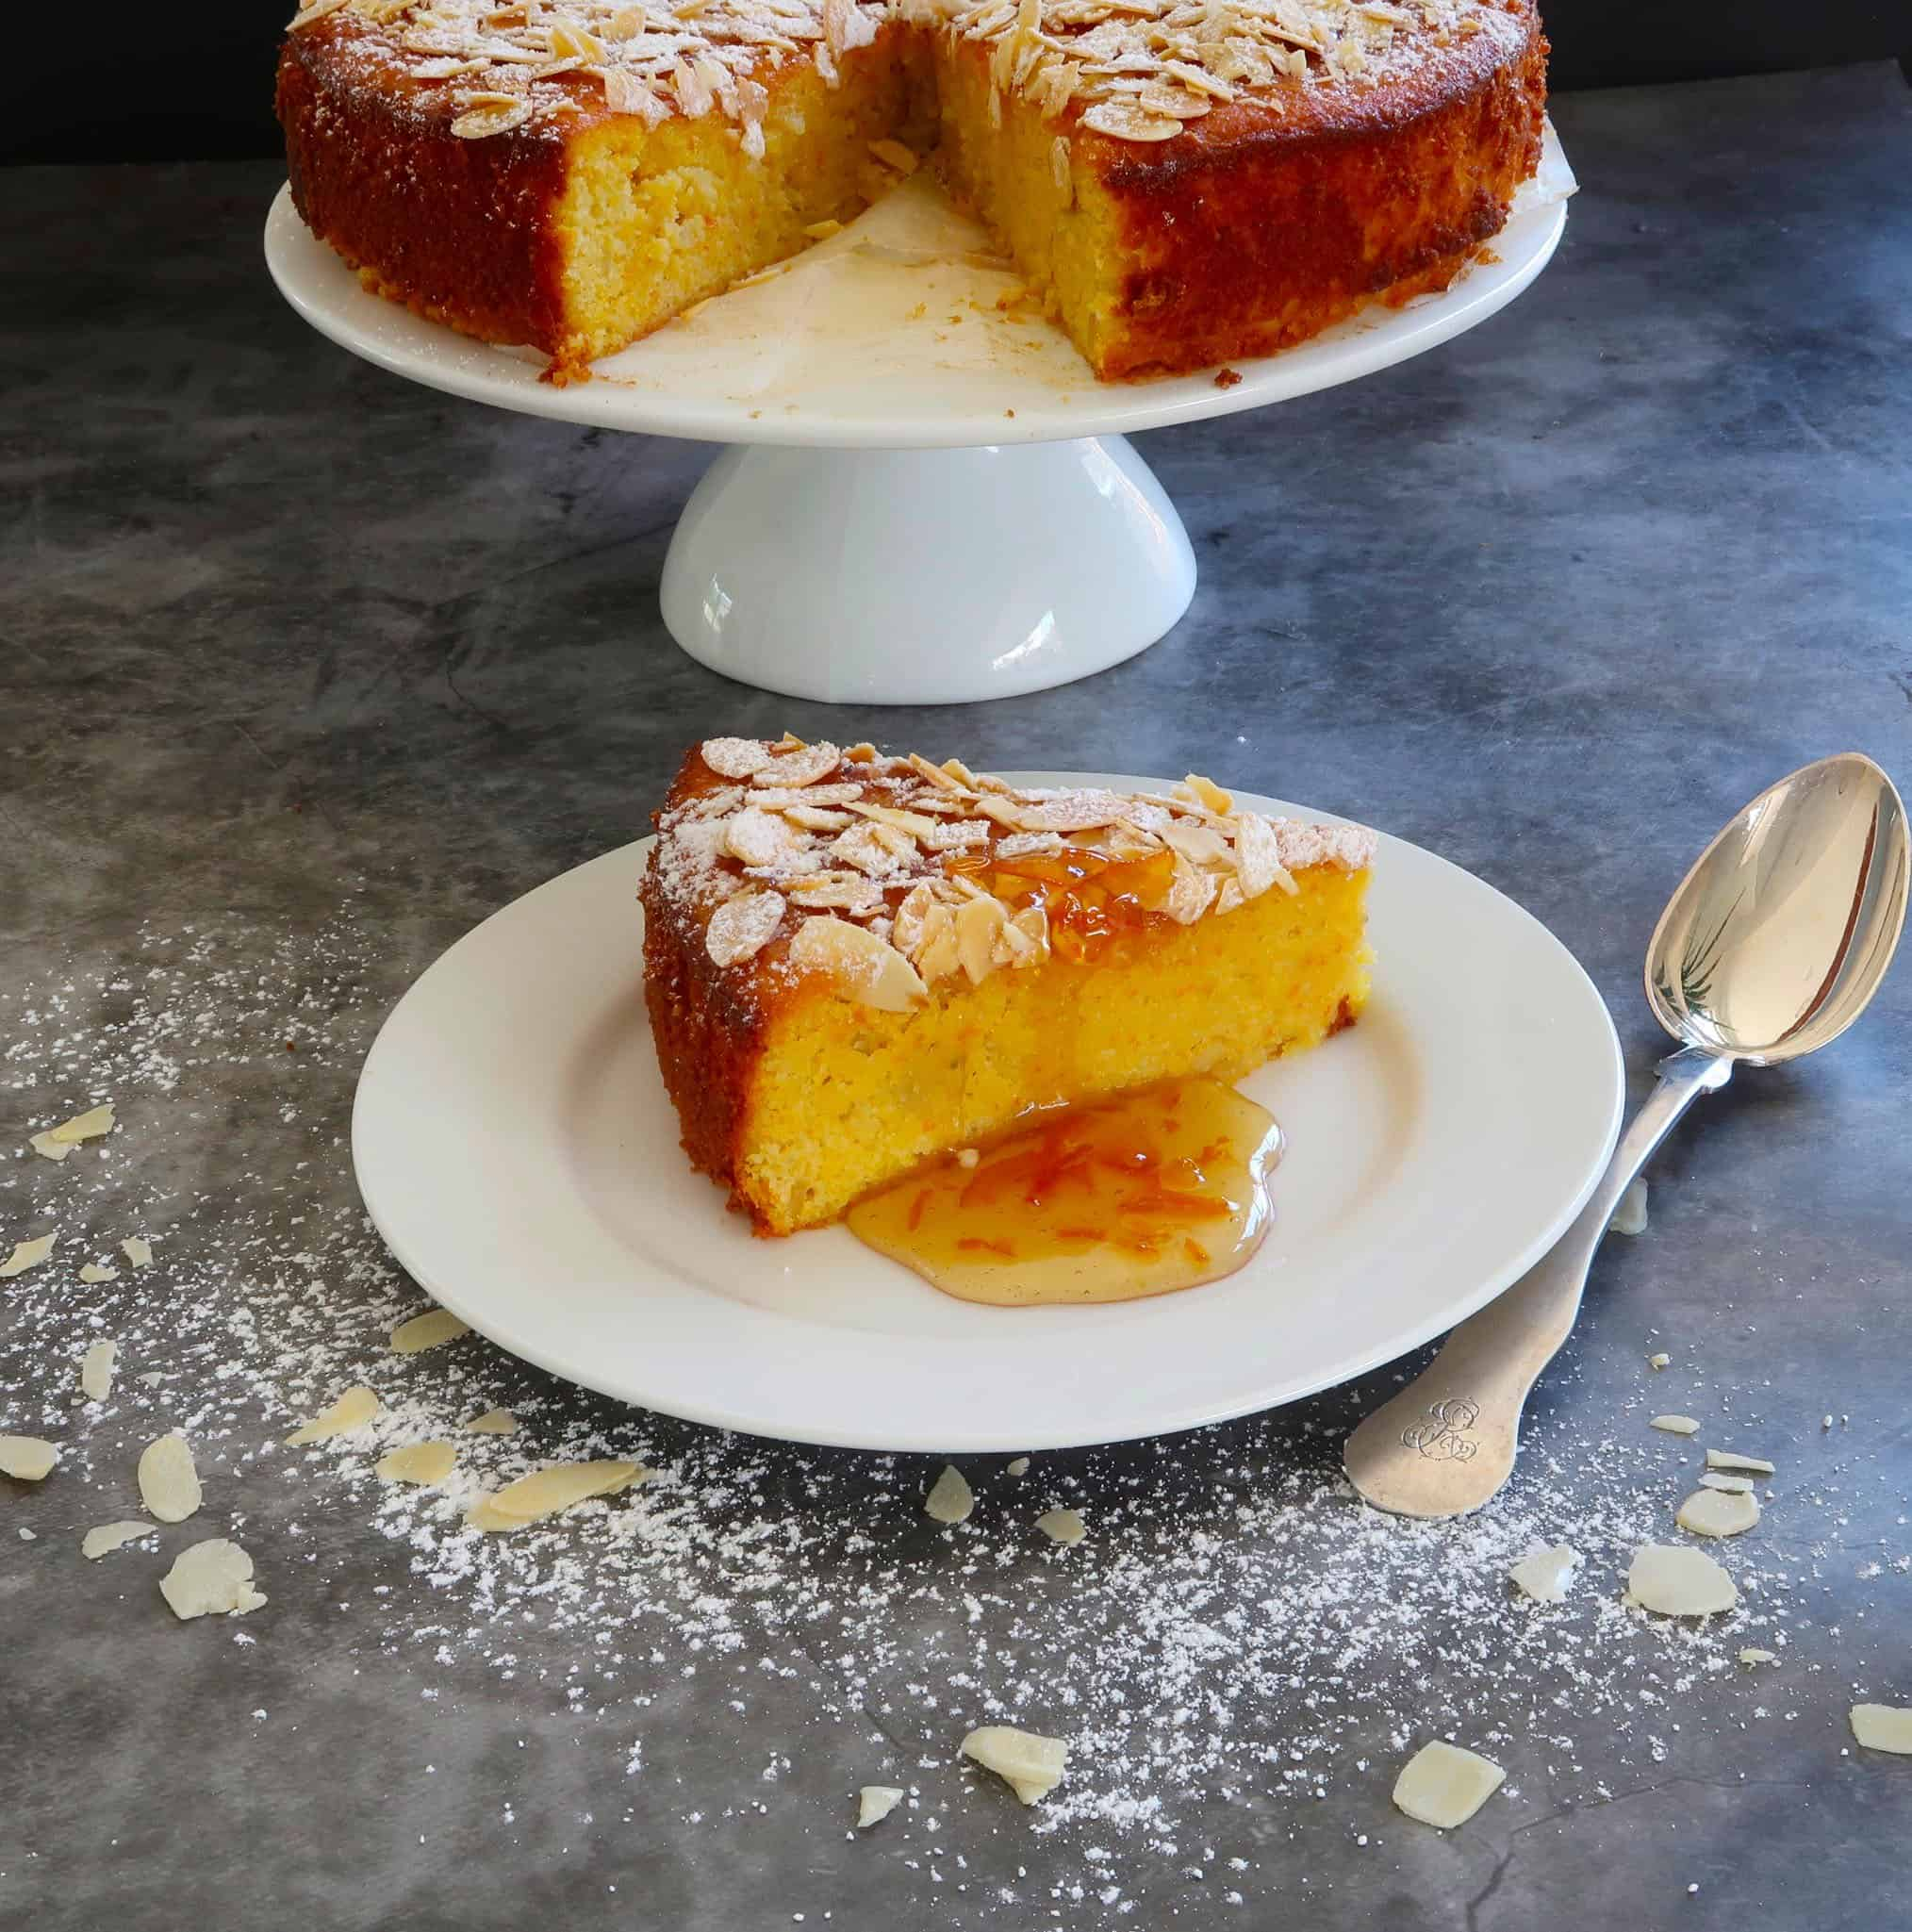 orange and almond cake with a slice served on a white plate and the cake in the background on a cake stand